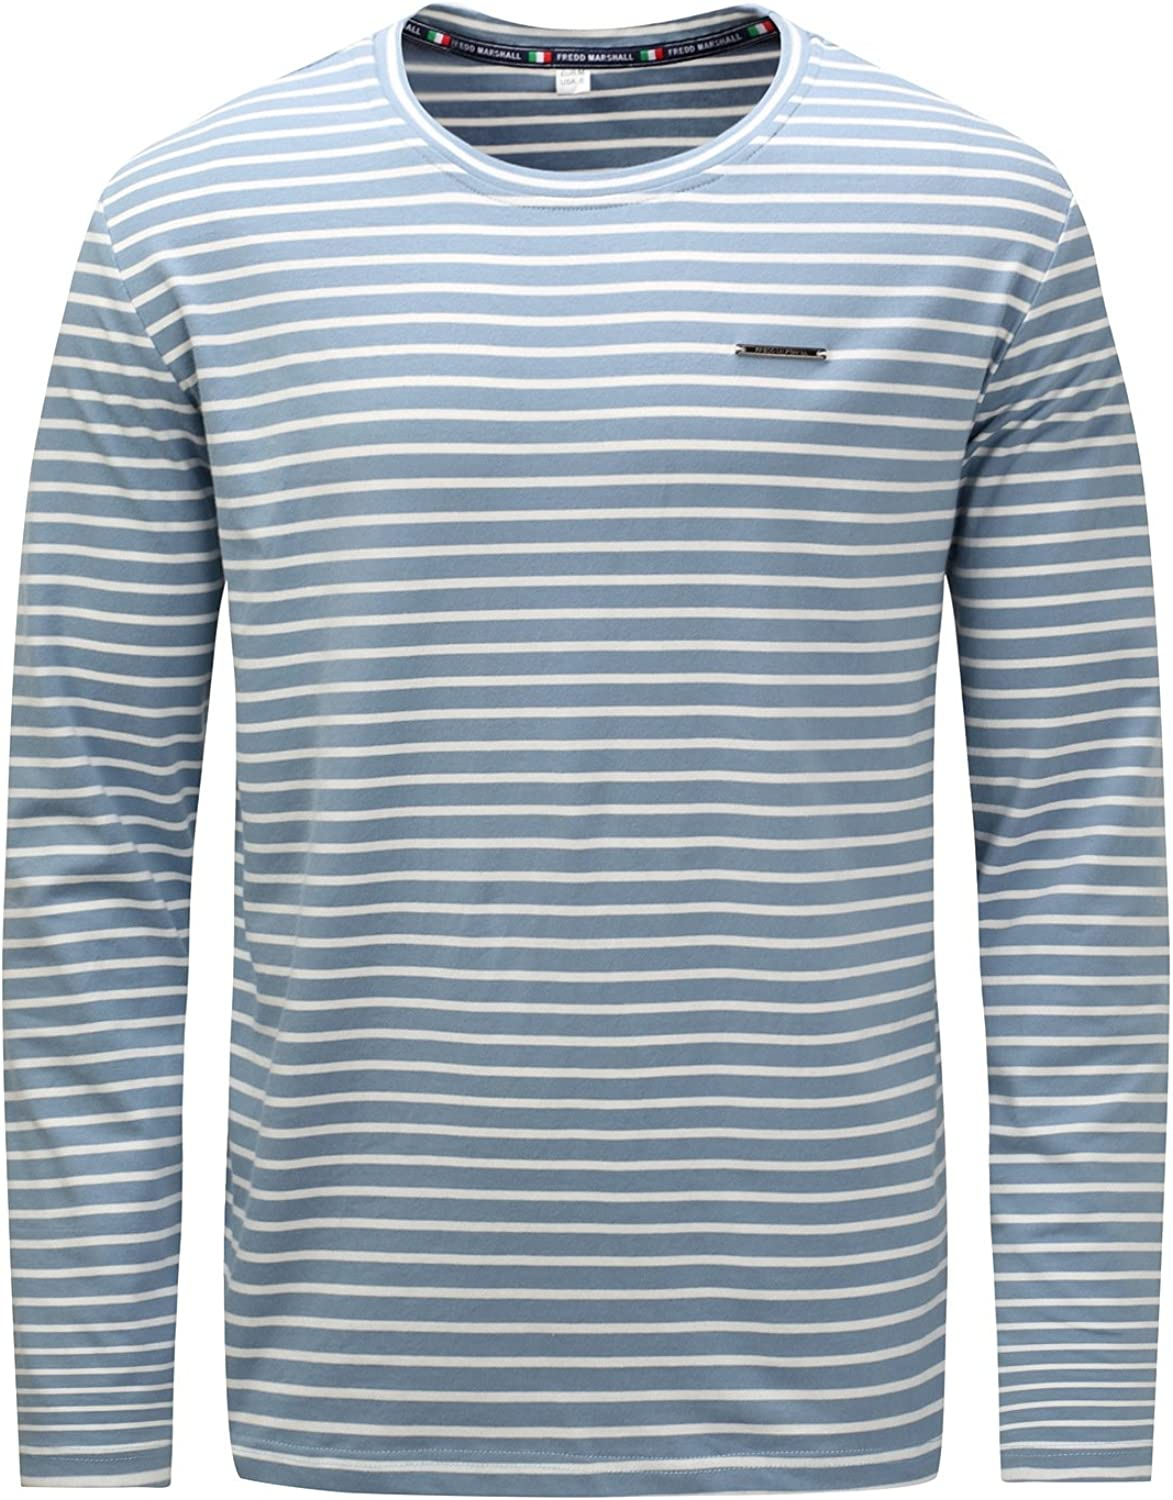 IYFBXl and Winter Coat Large Size Mens Striped Round Neck Long-Sleeved Shirt FM717-2